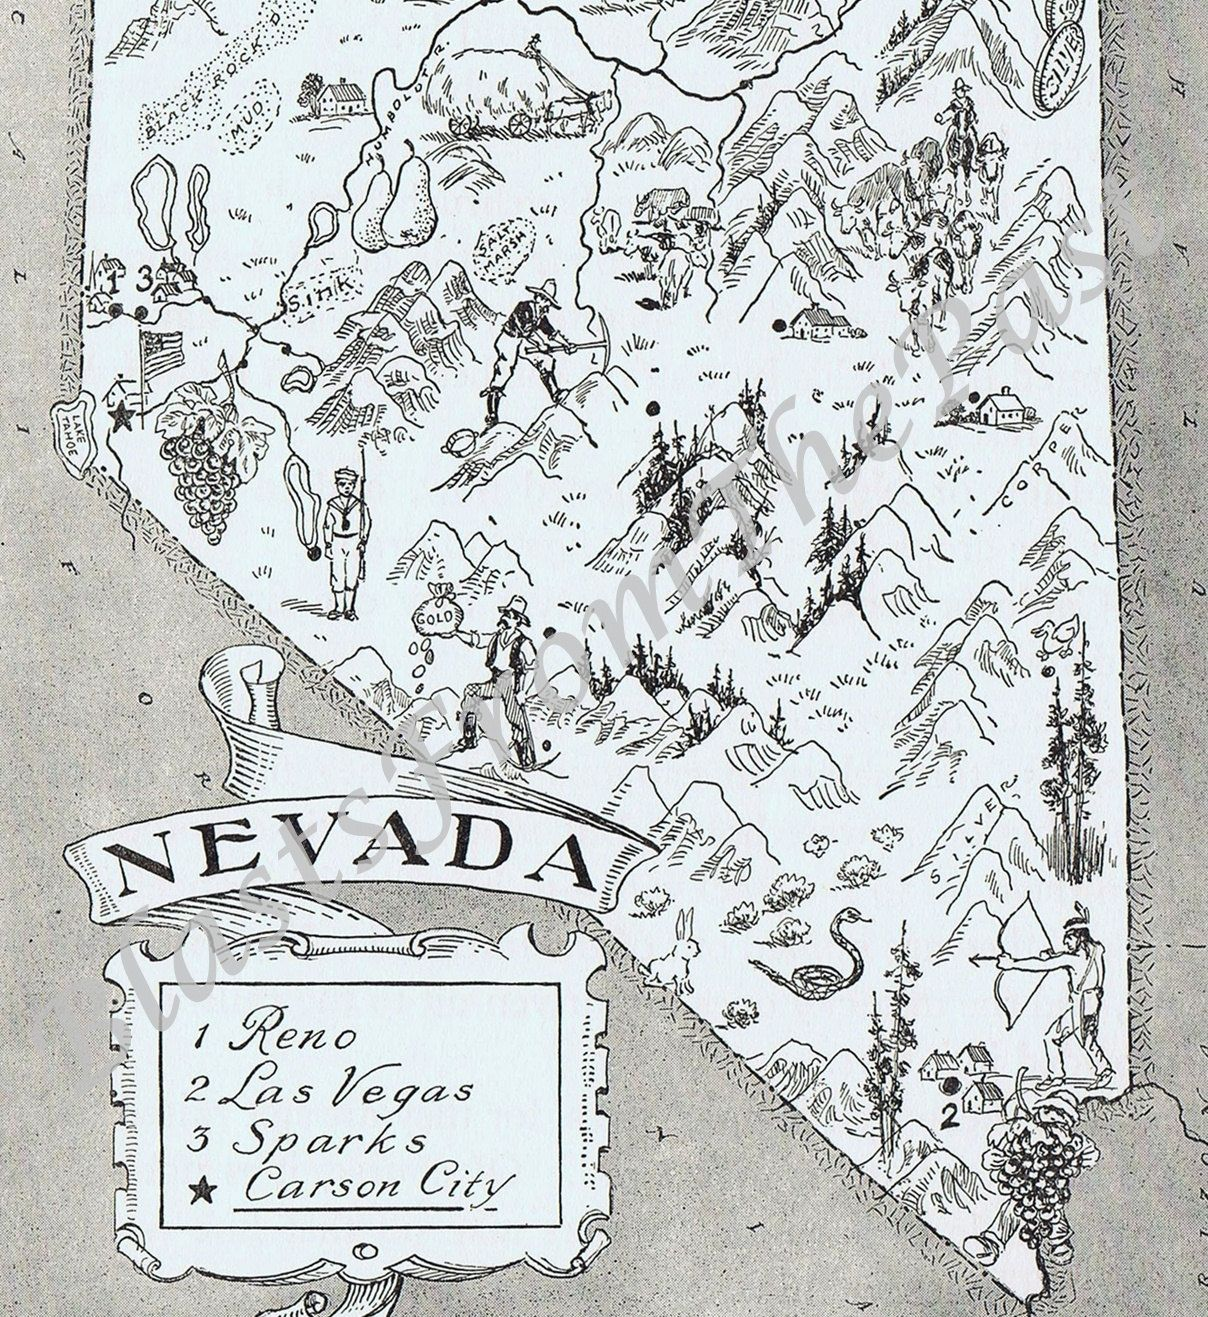 Nevada With Images Nevada Nevada Travel Liability Insurance